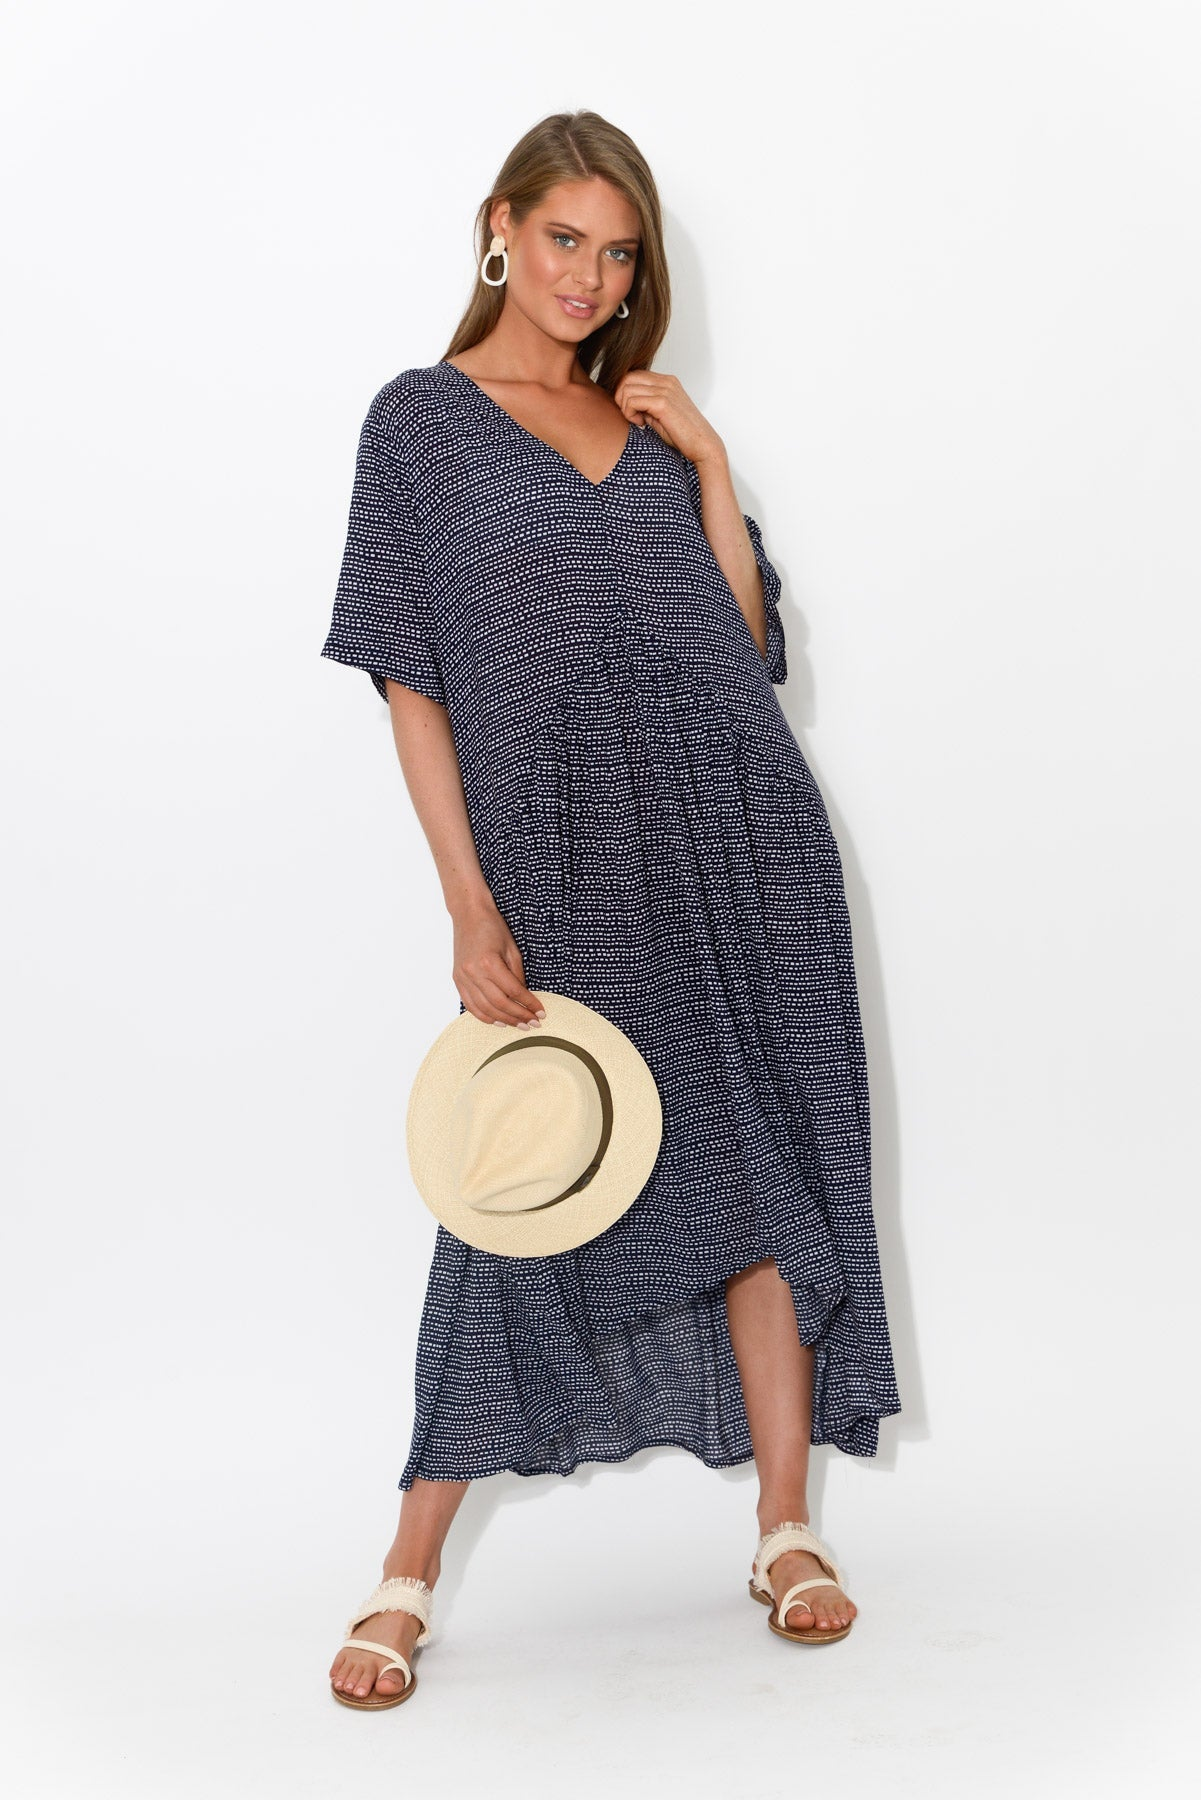 Ada Navy Dash Gather Dress - Blue Bungalow